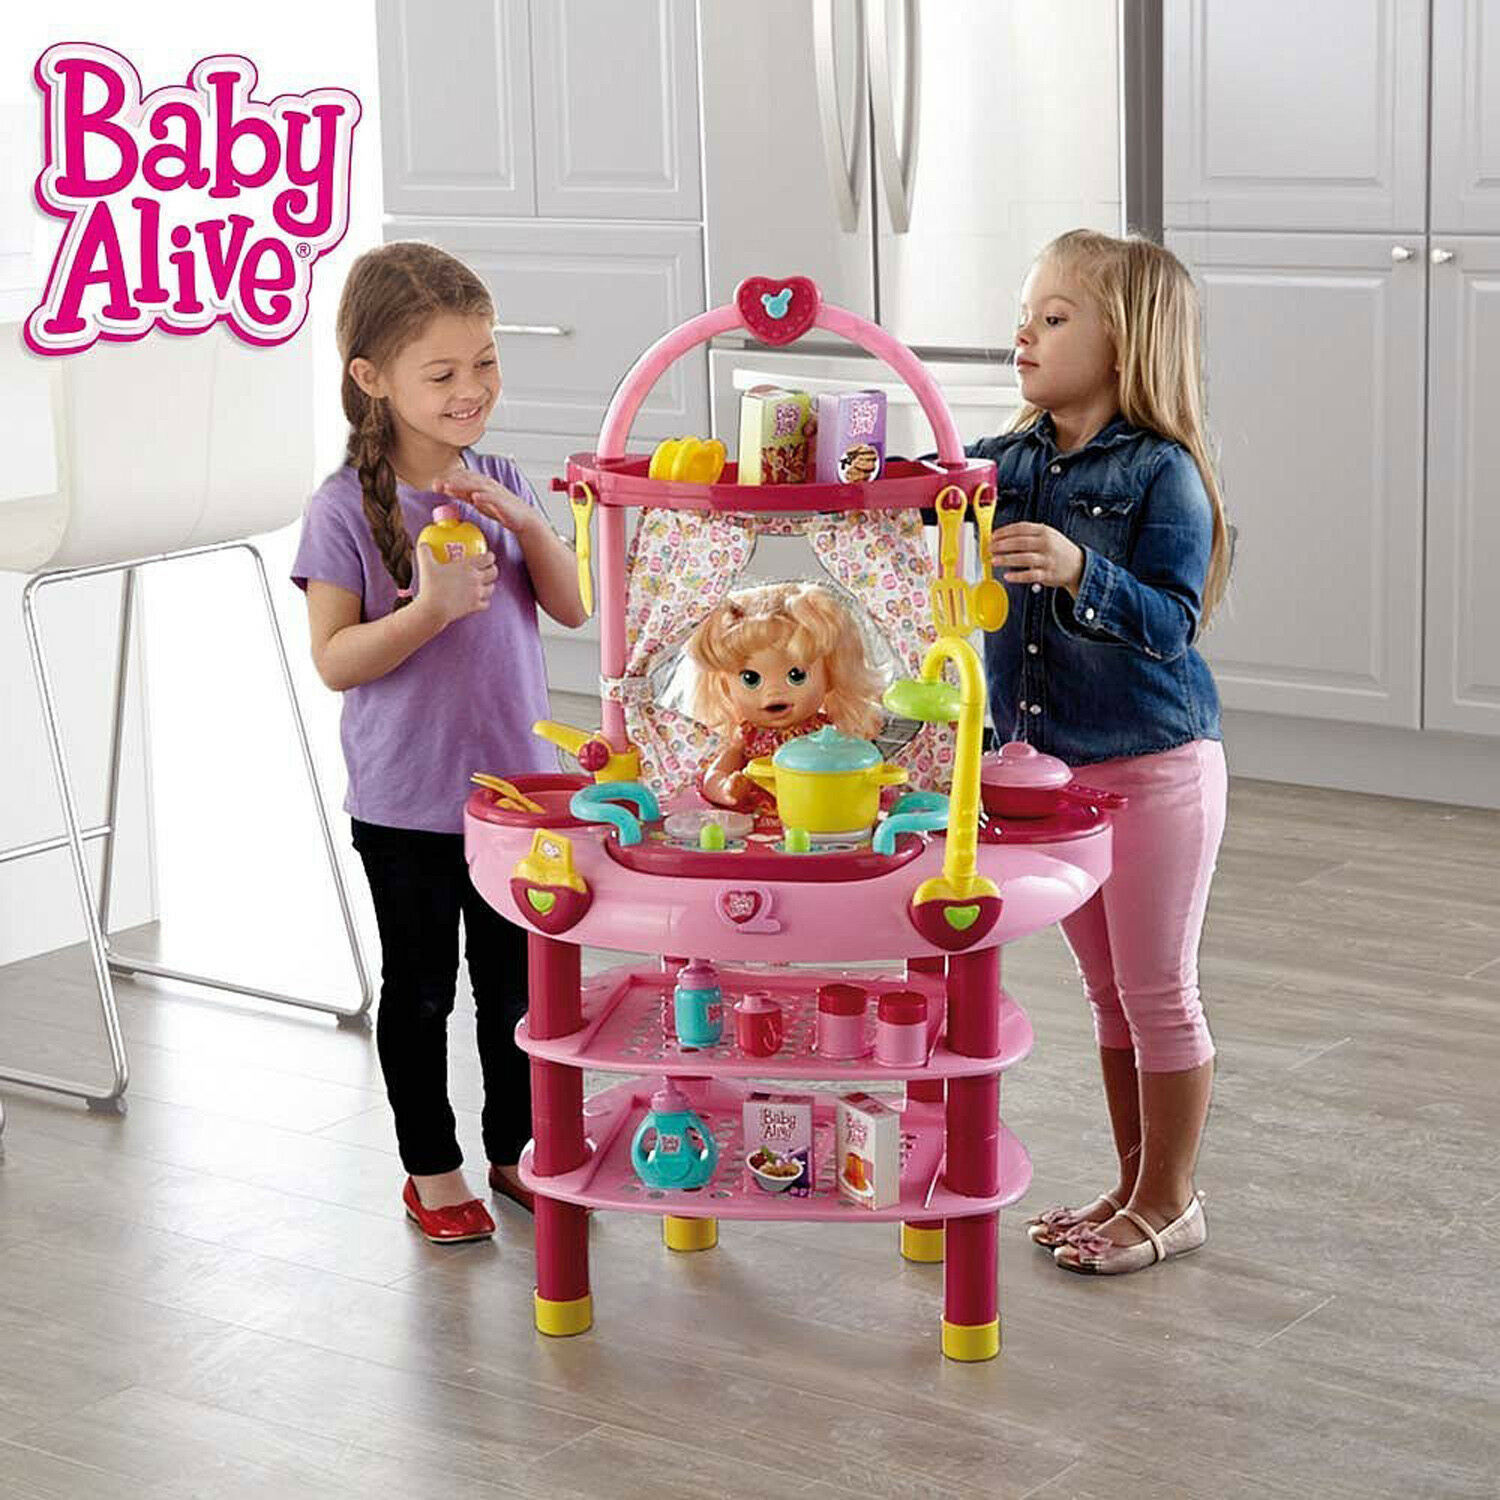 BRAND NEW BABY ALIVE DOLL COOK N CARE 3 IN 1 PLAY SET